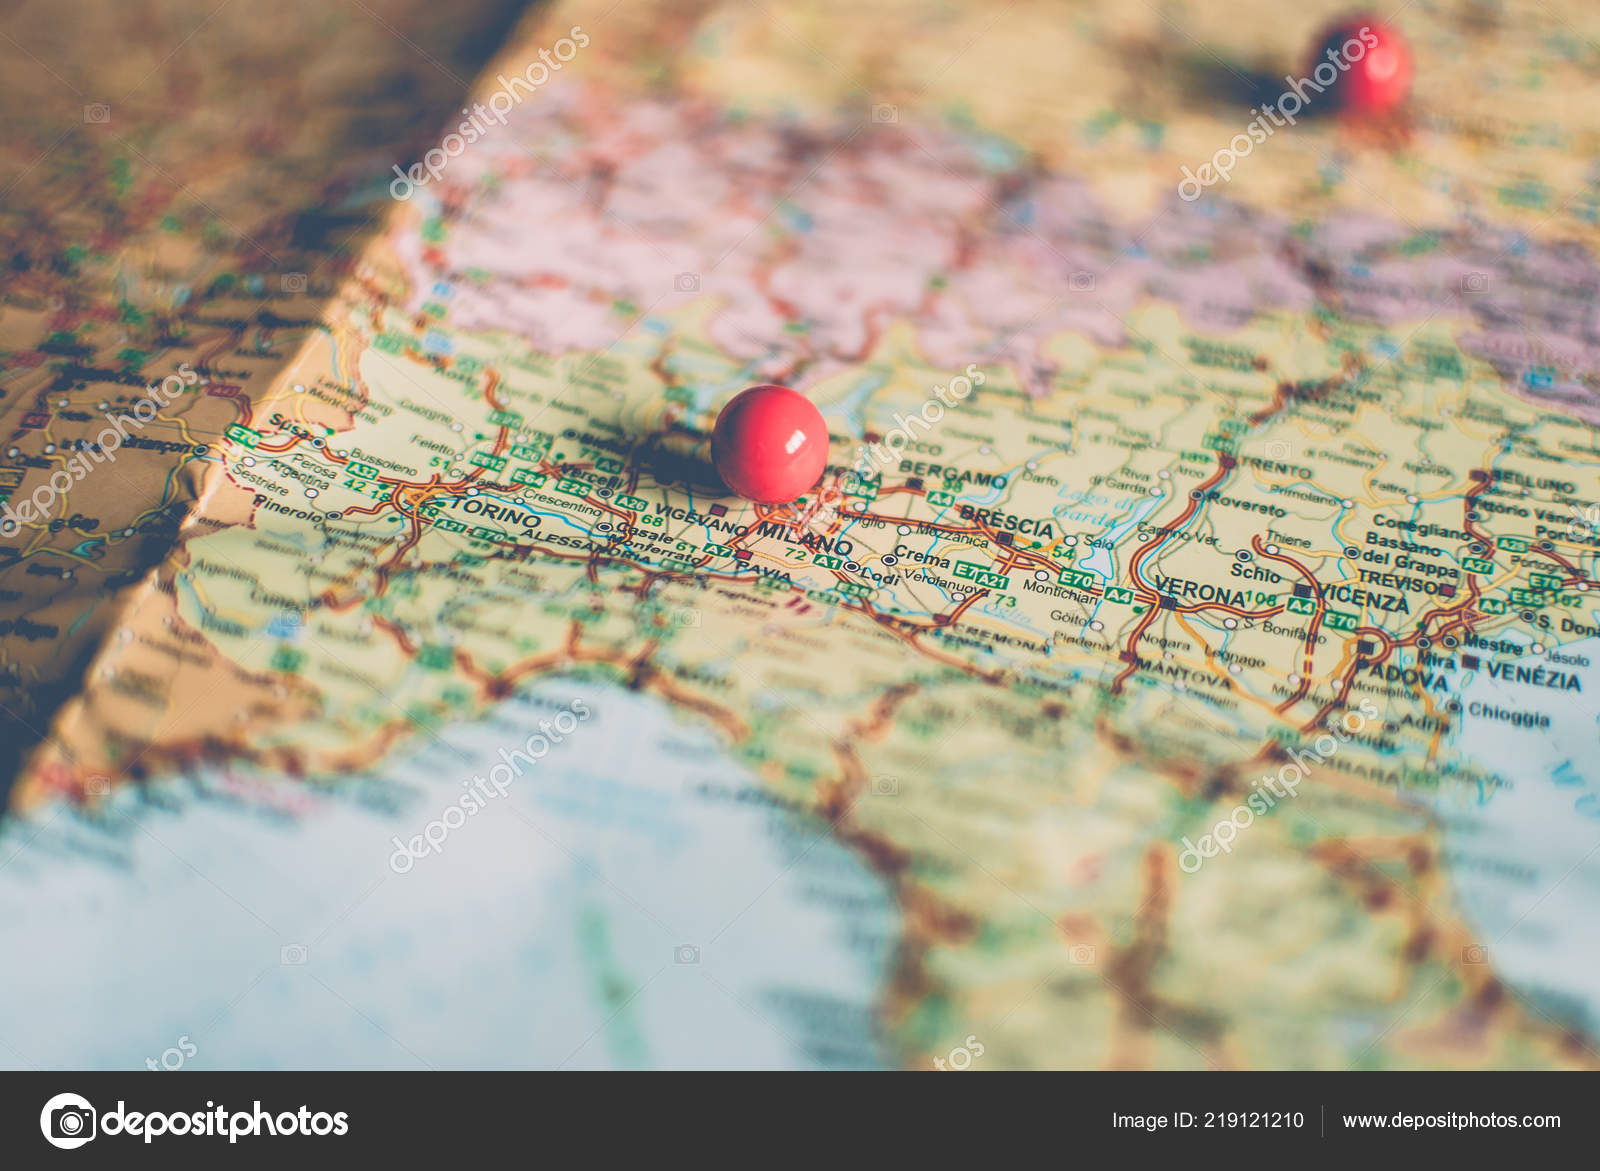 Closeup Traveler Road Map Vintage Retro Colors Countries Cities Western Stock Photo C Yurii Zymovin 219121210